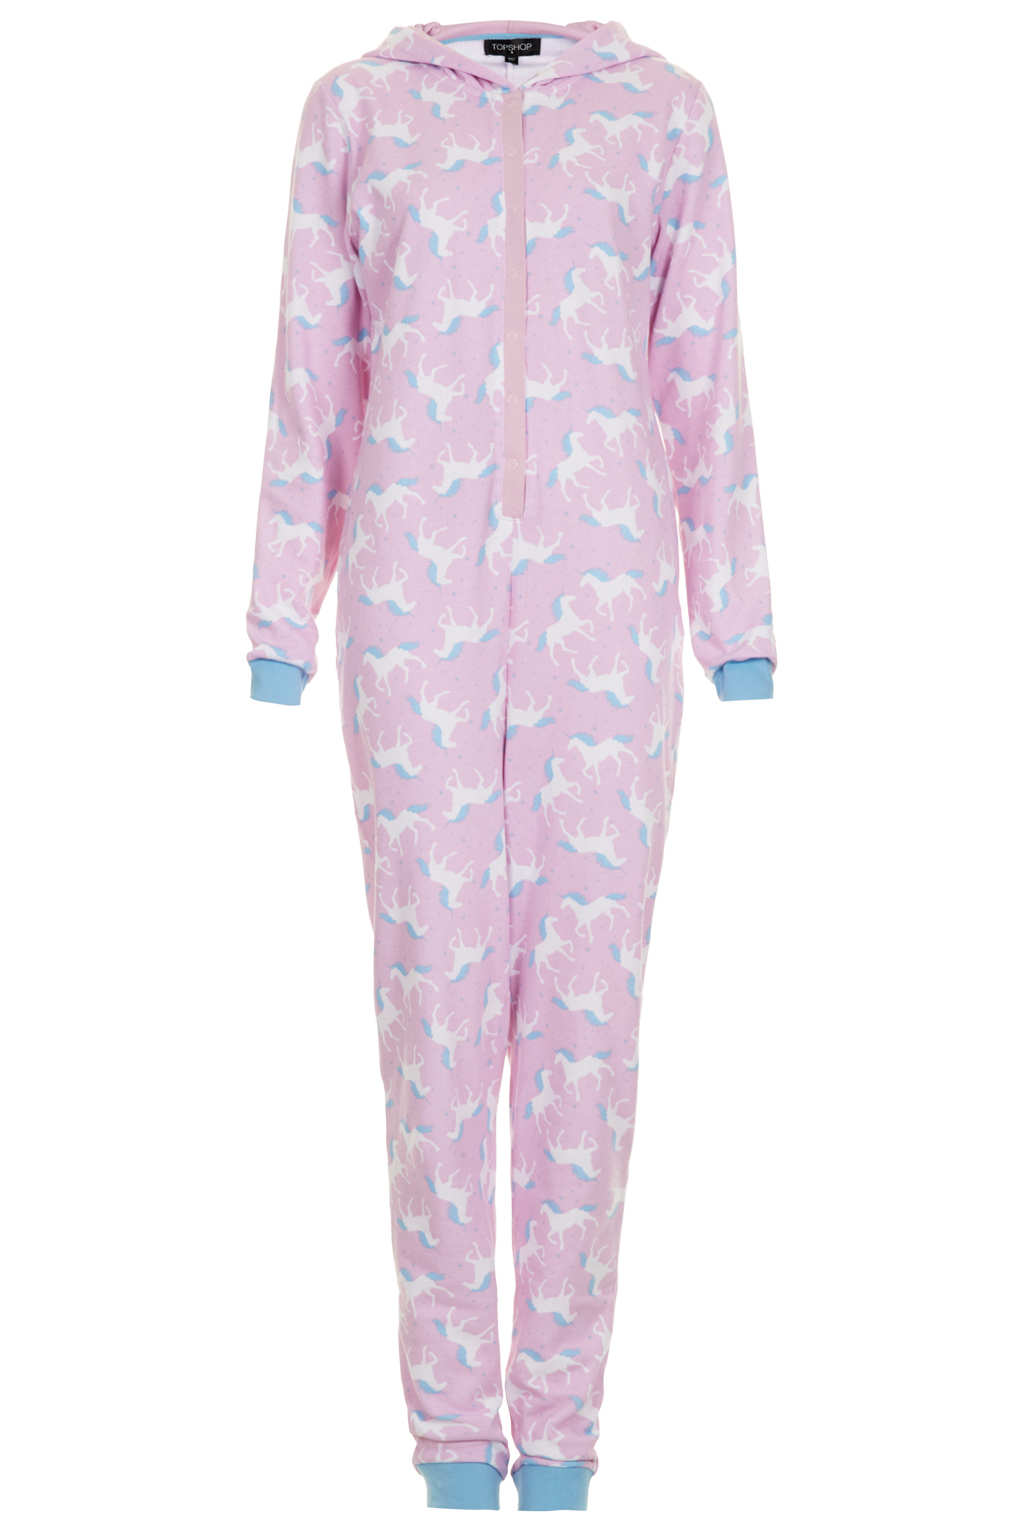 Americana Adult Footed onesie Pajamas. $ Ex Tax: $ These Red, White and Blue are the all American Footed Pajamas are made from % polar fleece.